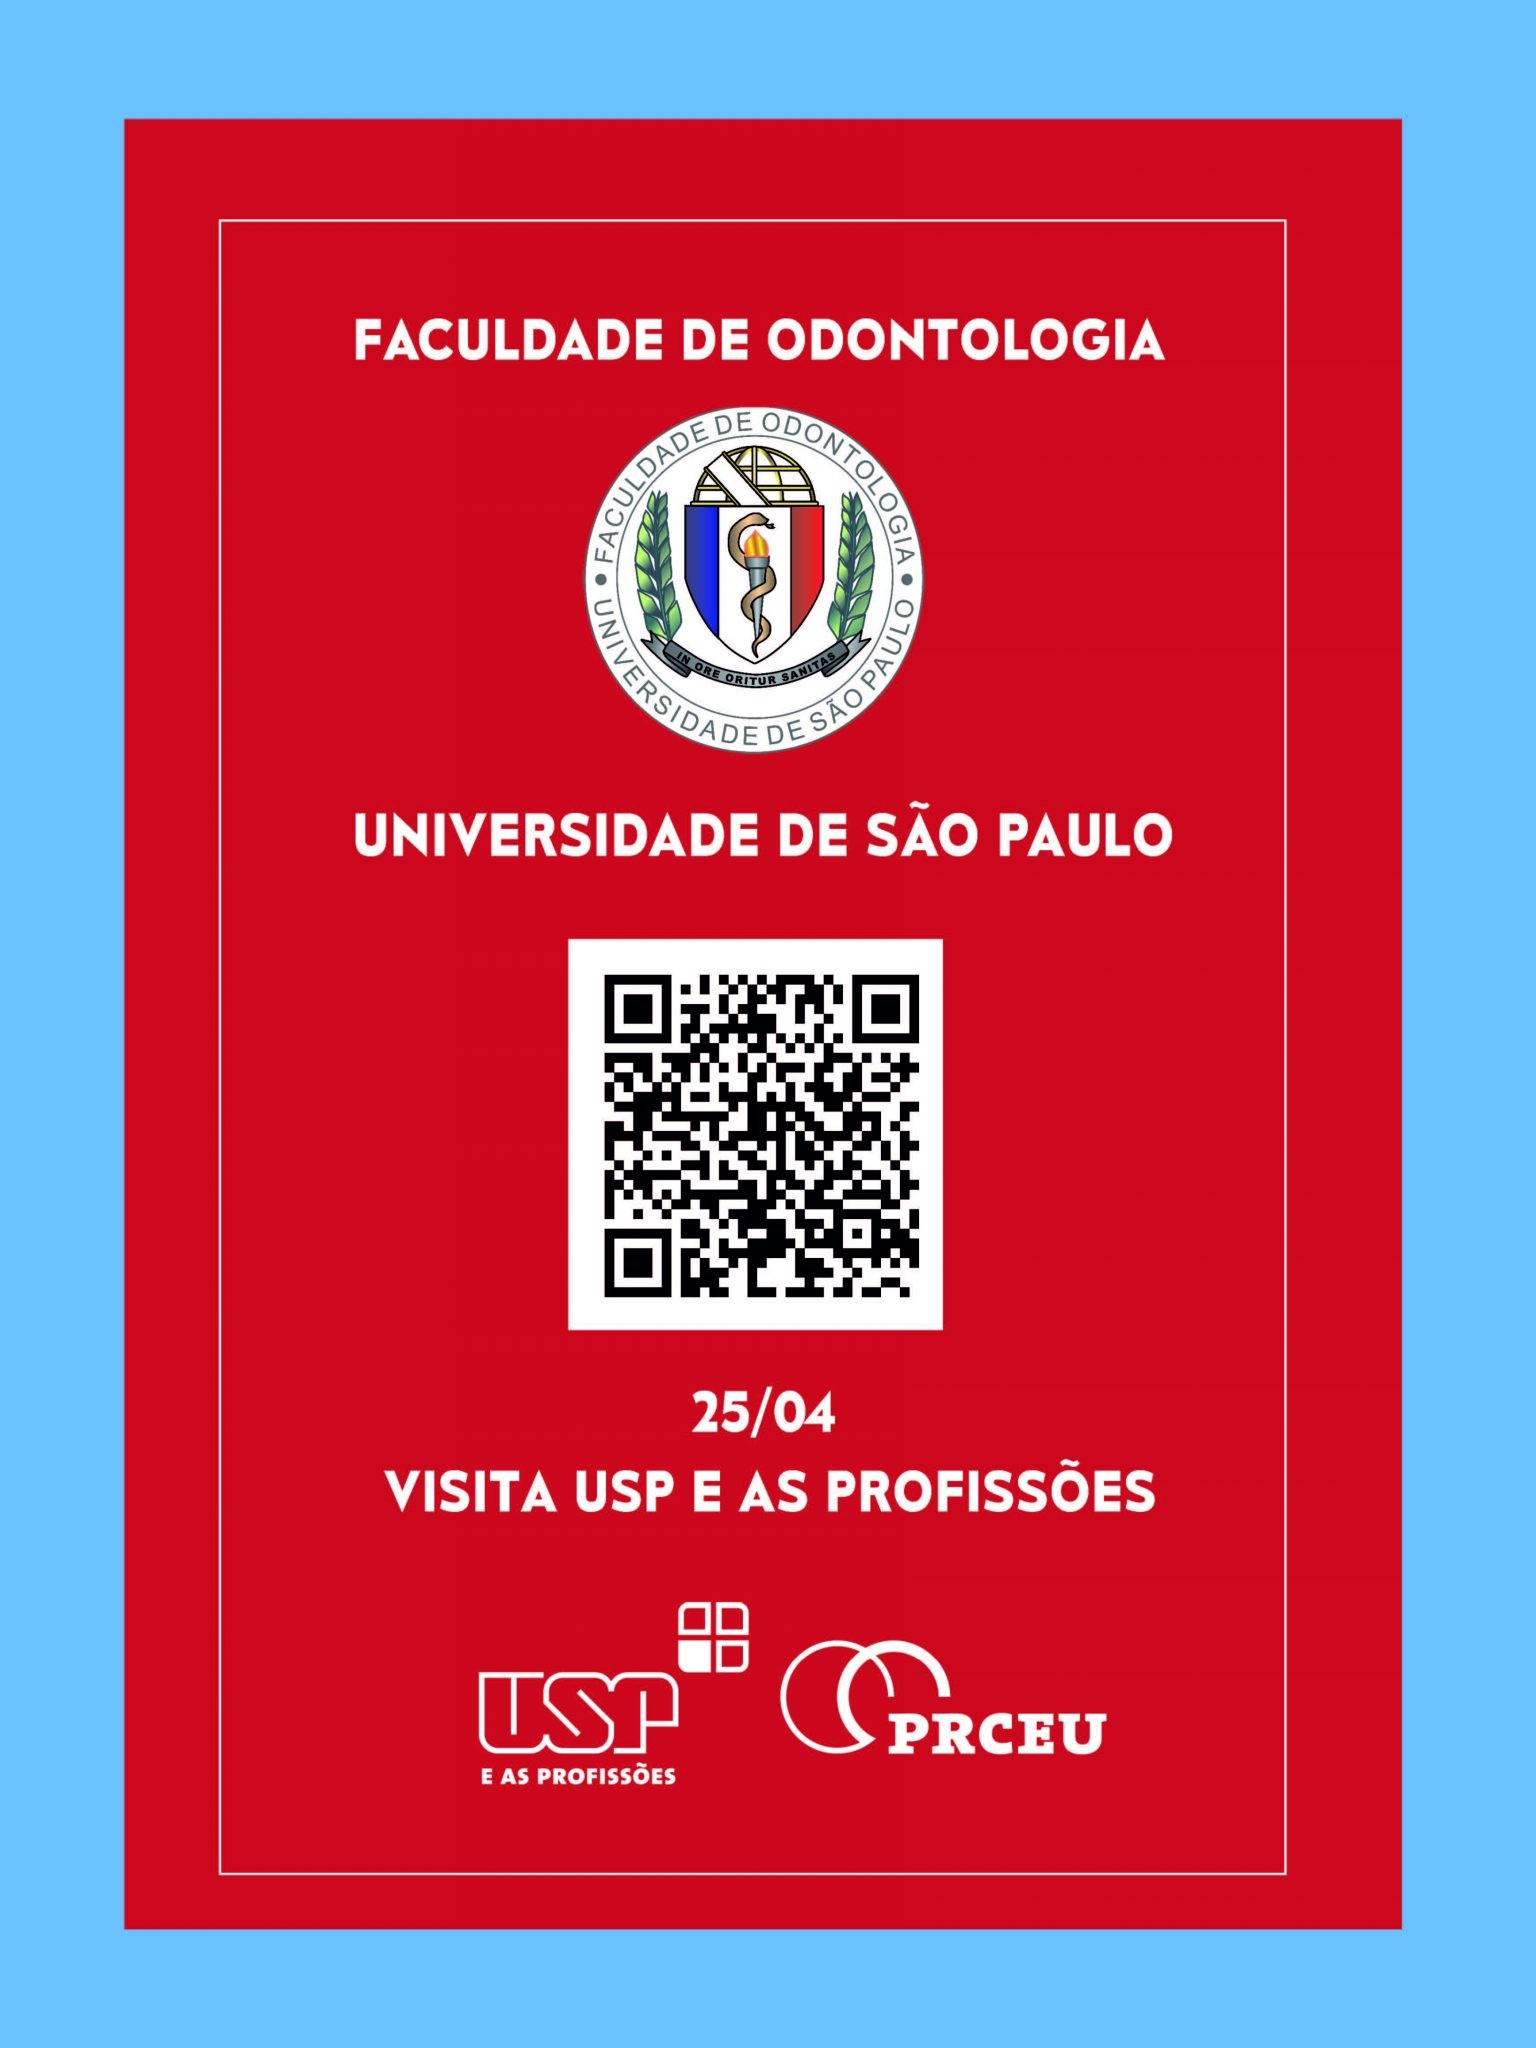 Calendario 2019 Portugues Brasil Actual Usp E as Profissµes Visitas Monitoradas   Fousp Faculdade De